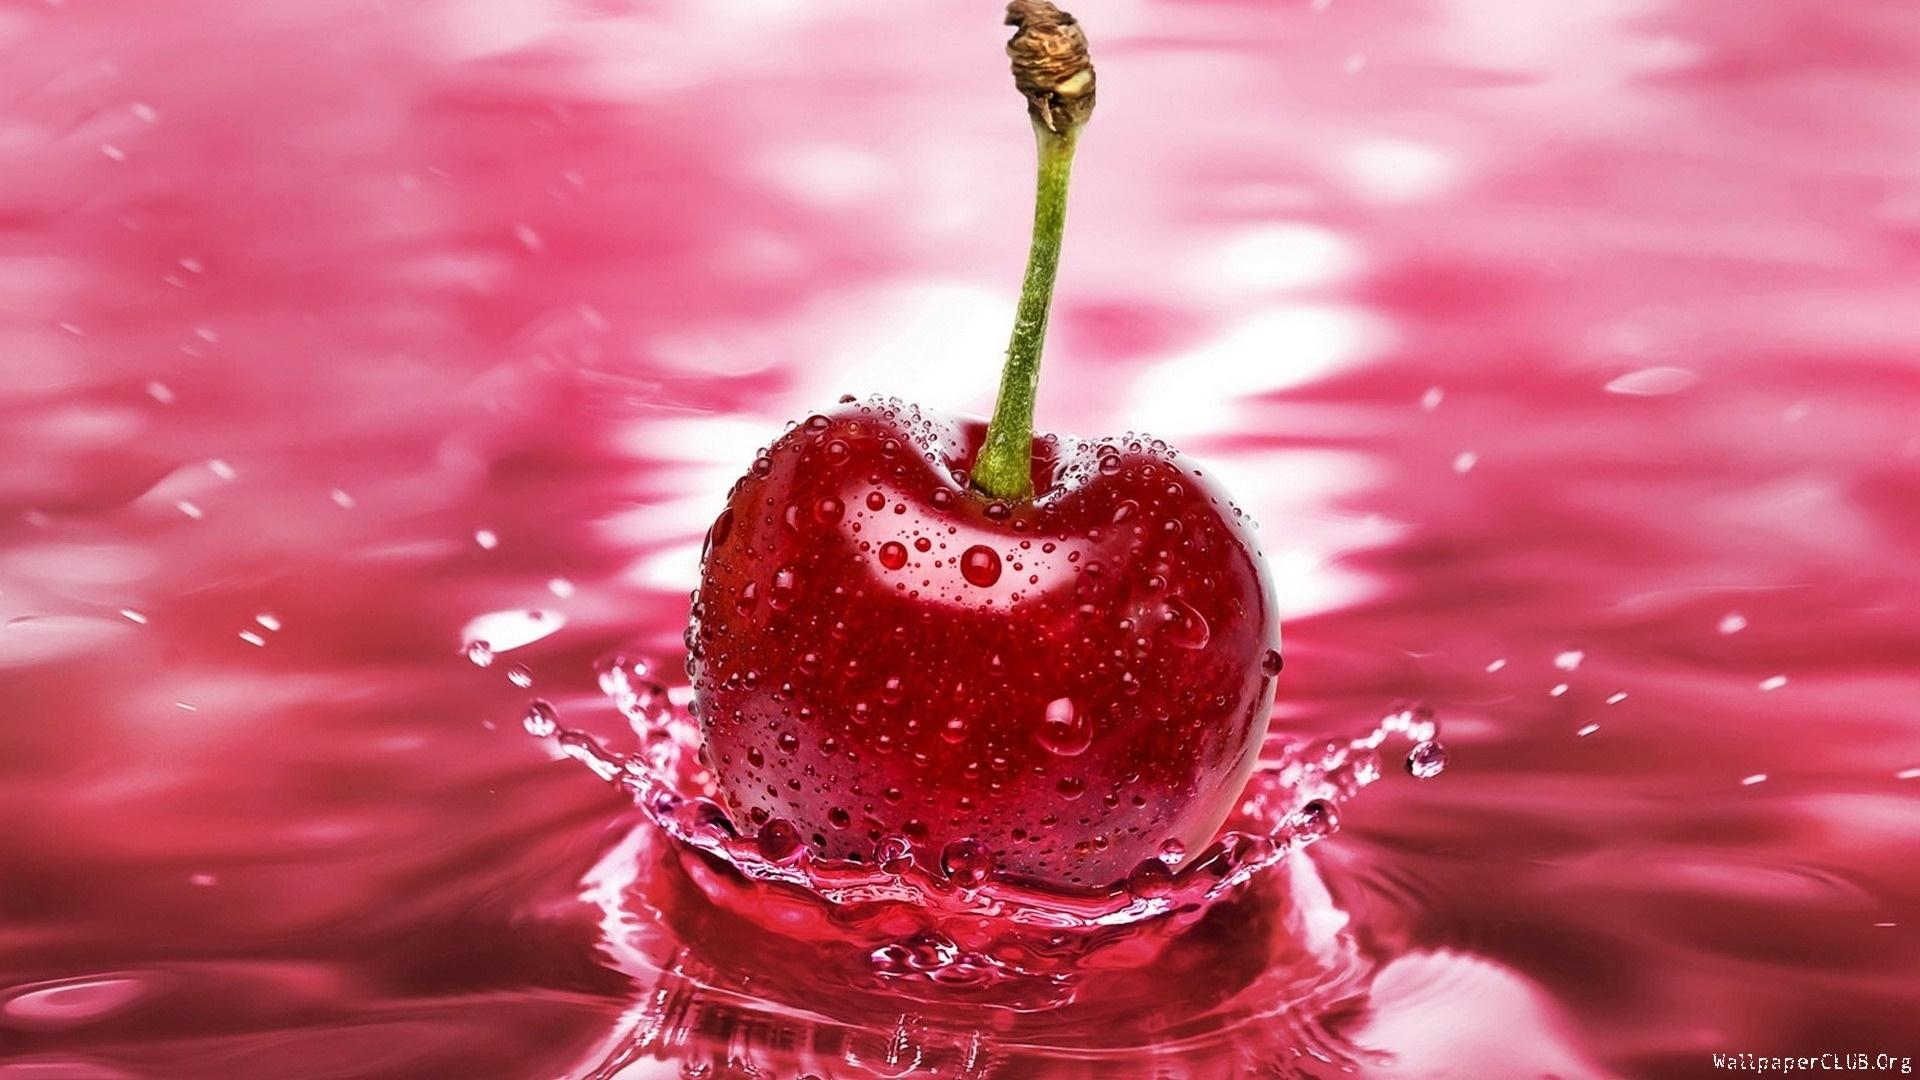 Cherry at 1280 x 960 size wallpapers HD quality